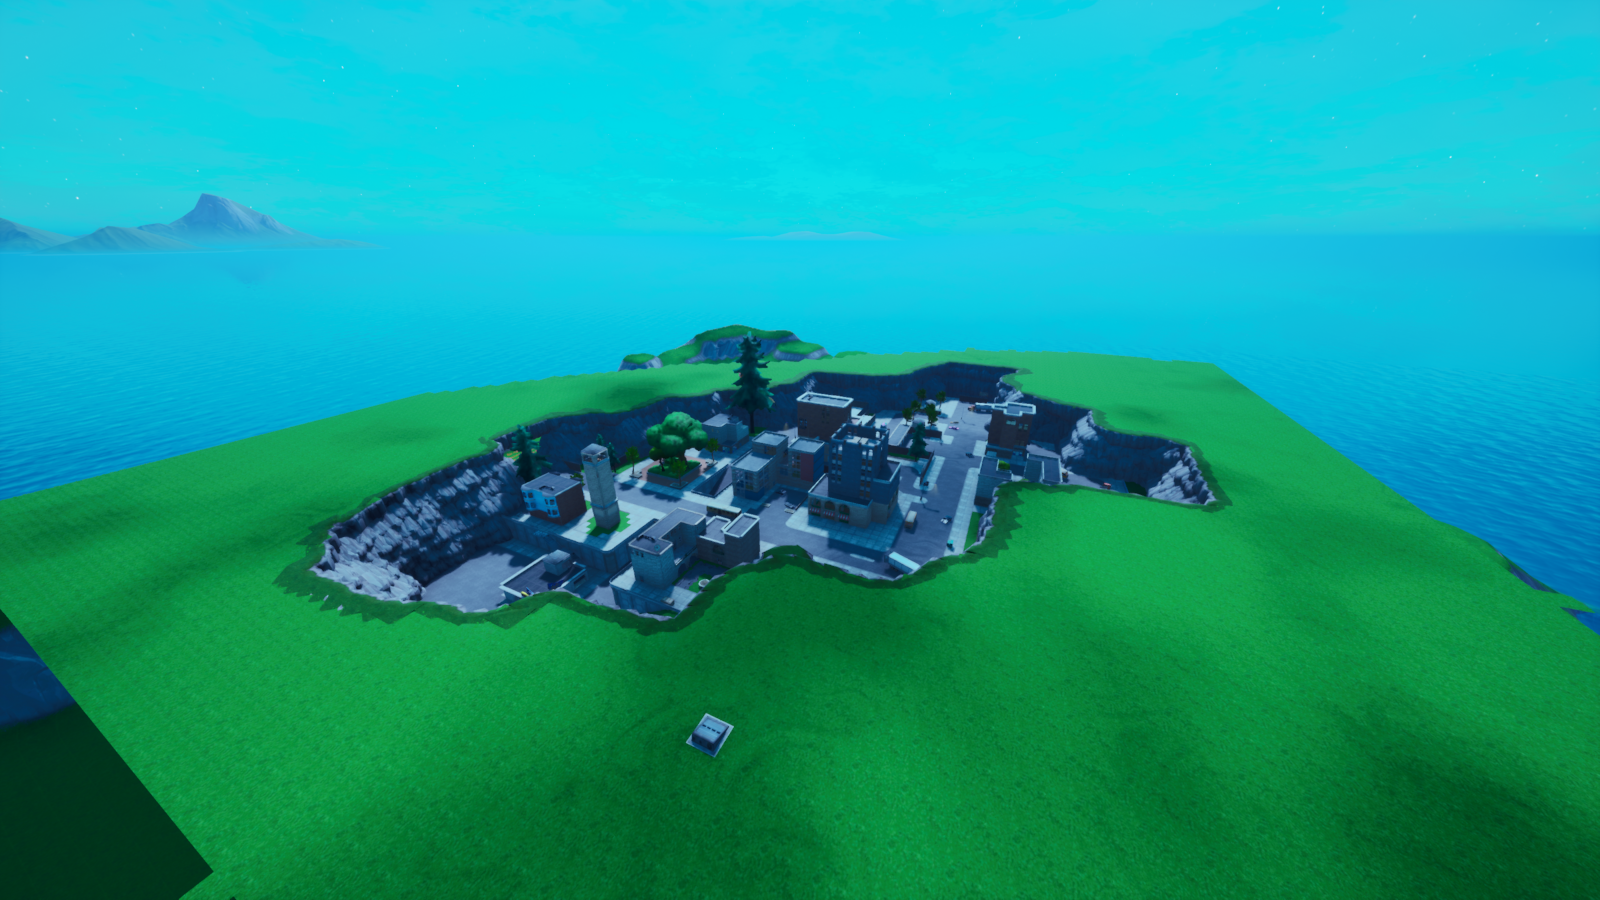 Cantfind Old Tilted Towers Zone Wars Map Learn to code and make your own app or game in minutes. cantfind old tilted towers zone wars map